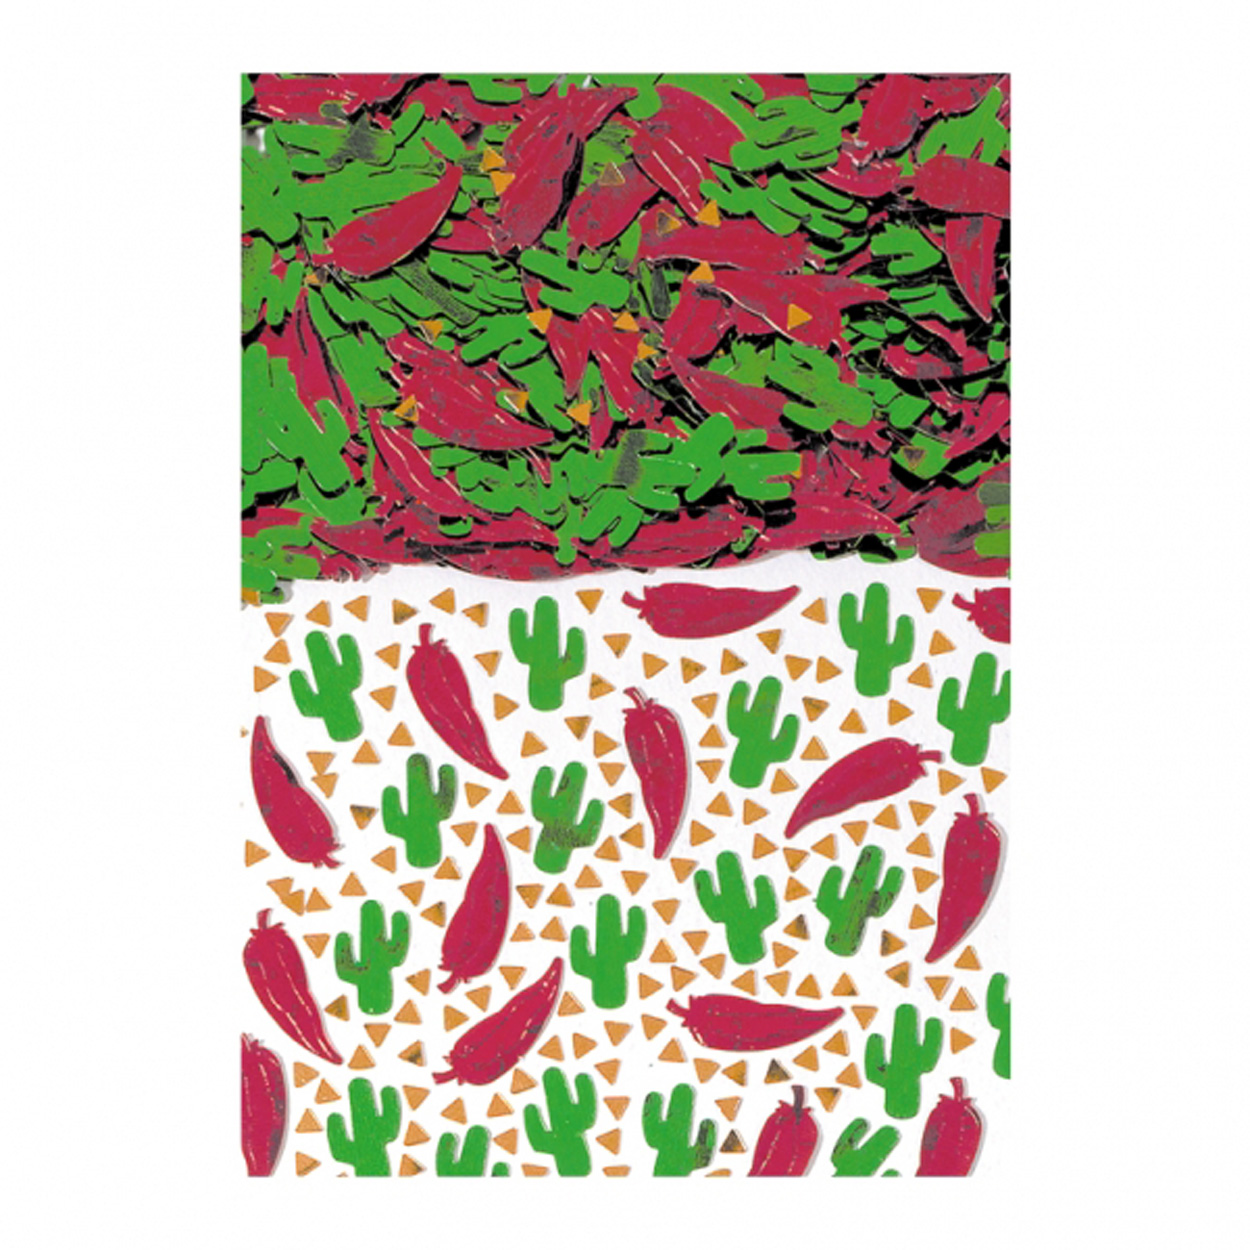 Details About Mexican Fiesta Party Table Confetti Party Decorations Red Chili Green Cactus